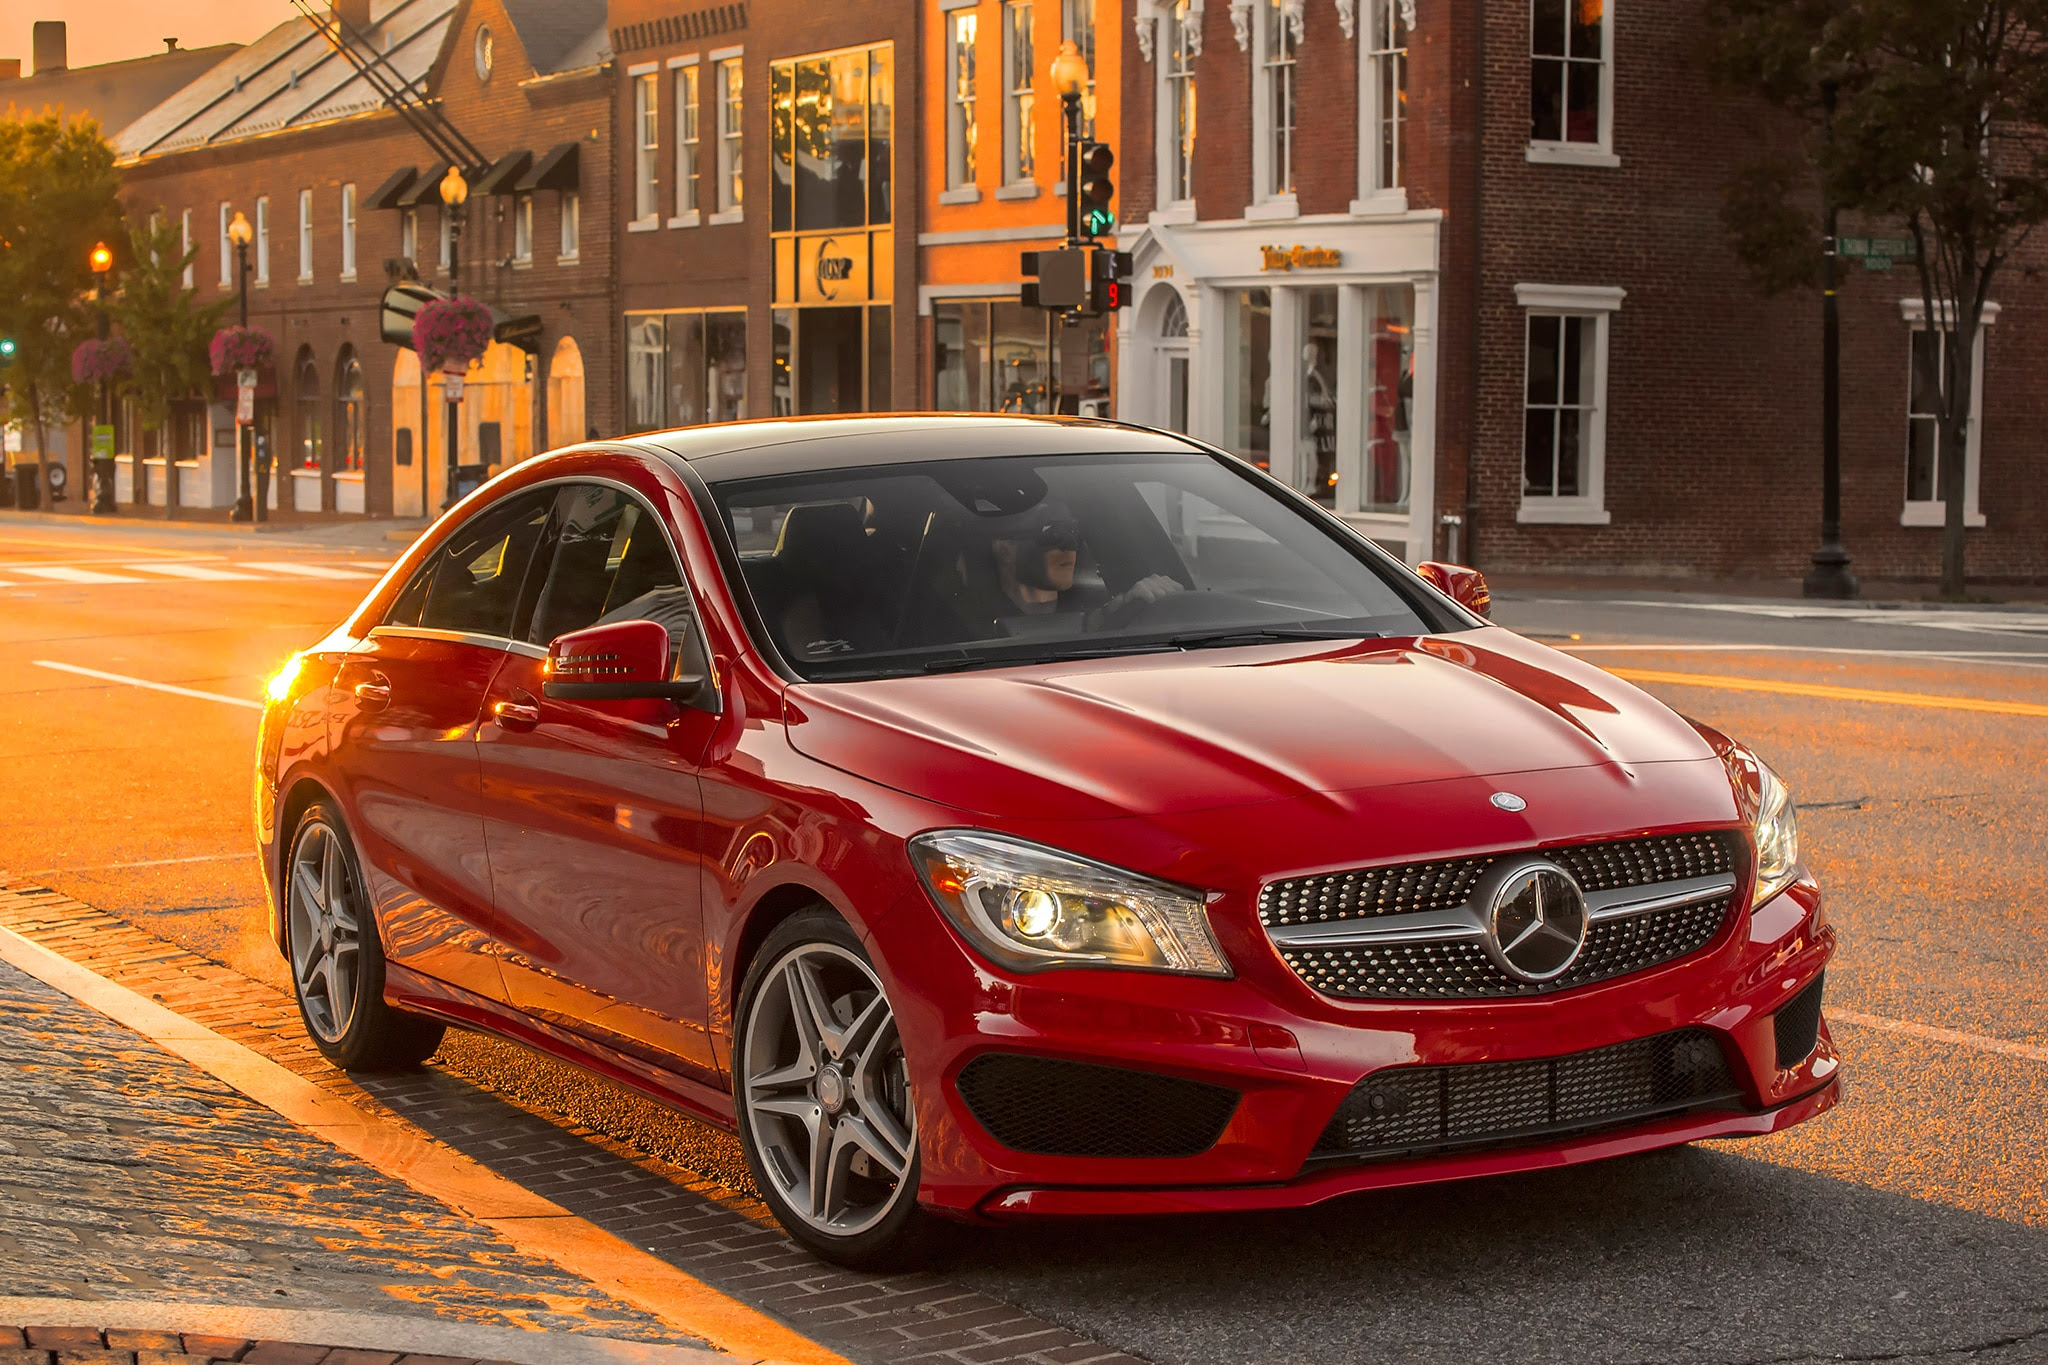 2015 Mercedes-Benz CLA Price Increases $1,600 to $32,425